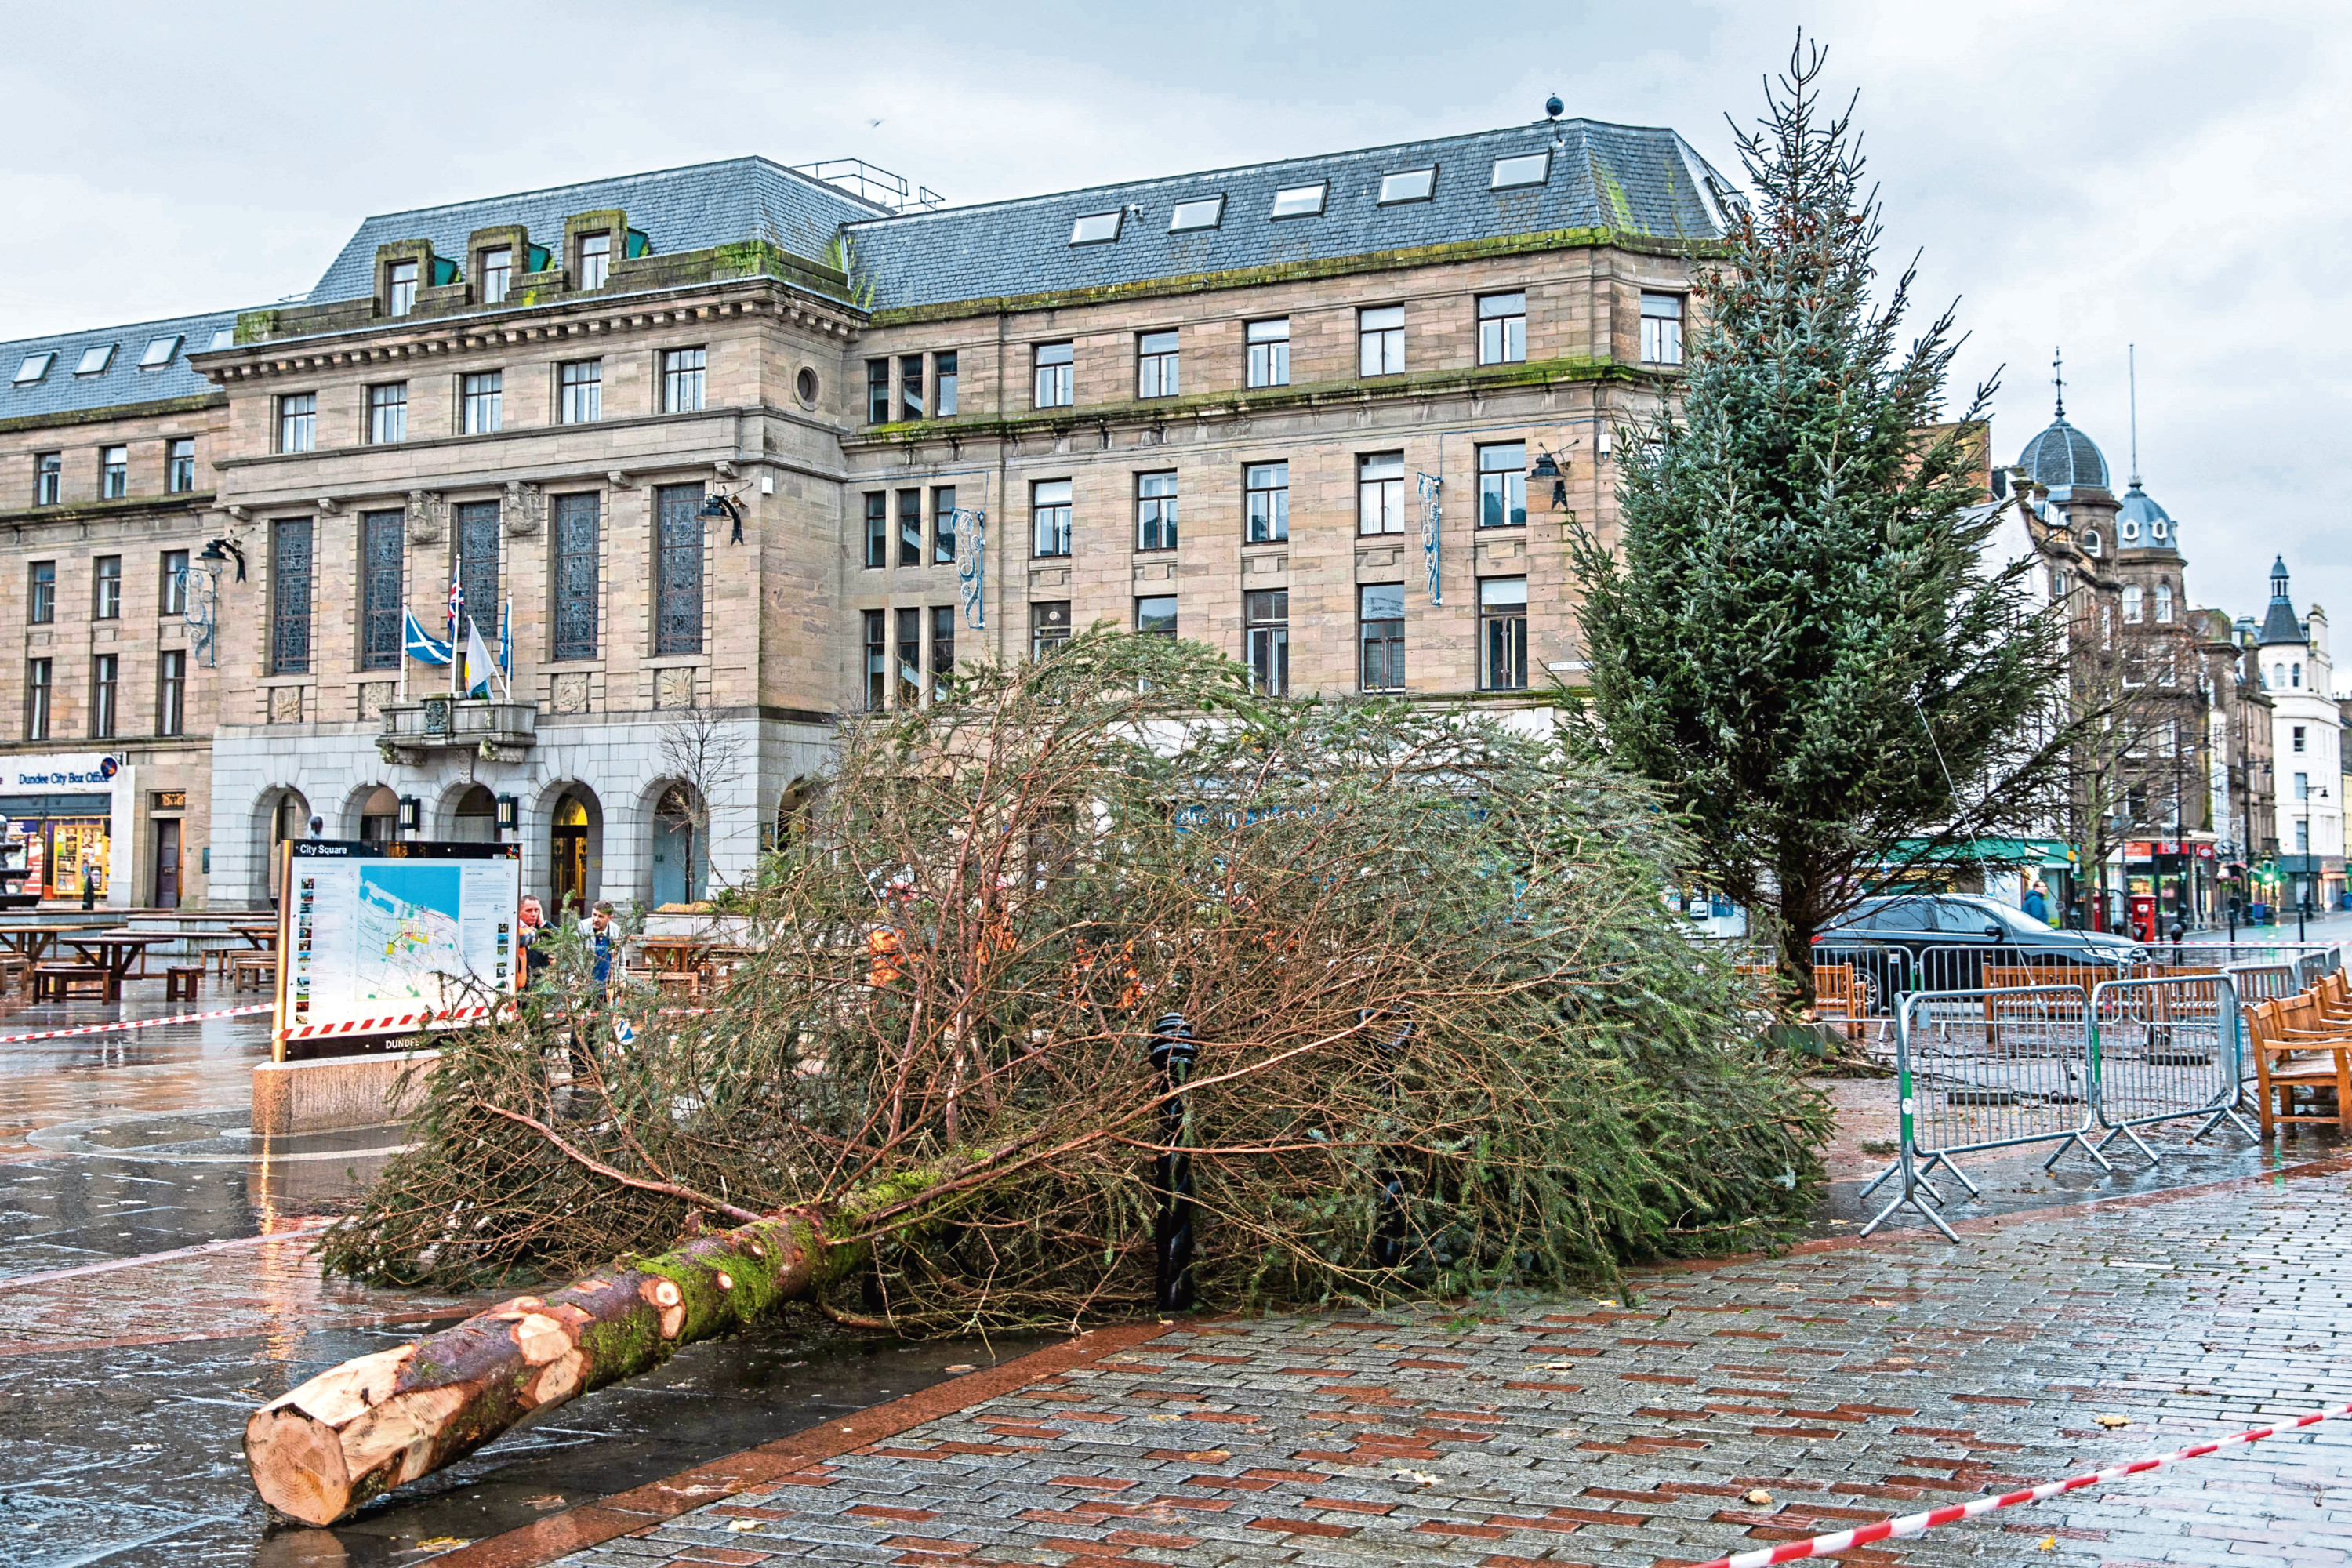 Tree surgeons put a new Christmas Tree in place after uproar at previous tree.